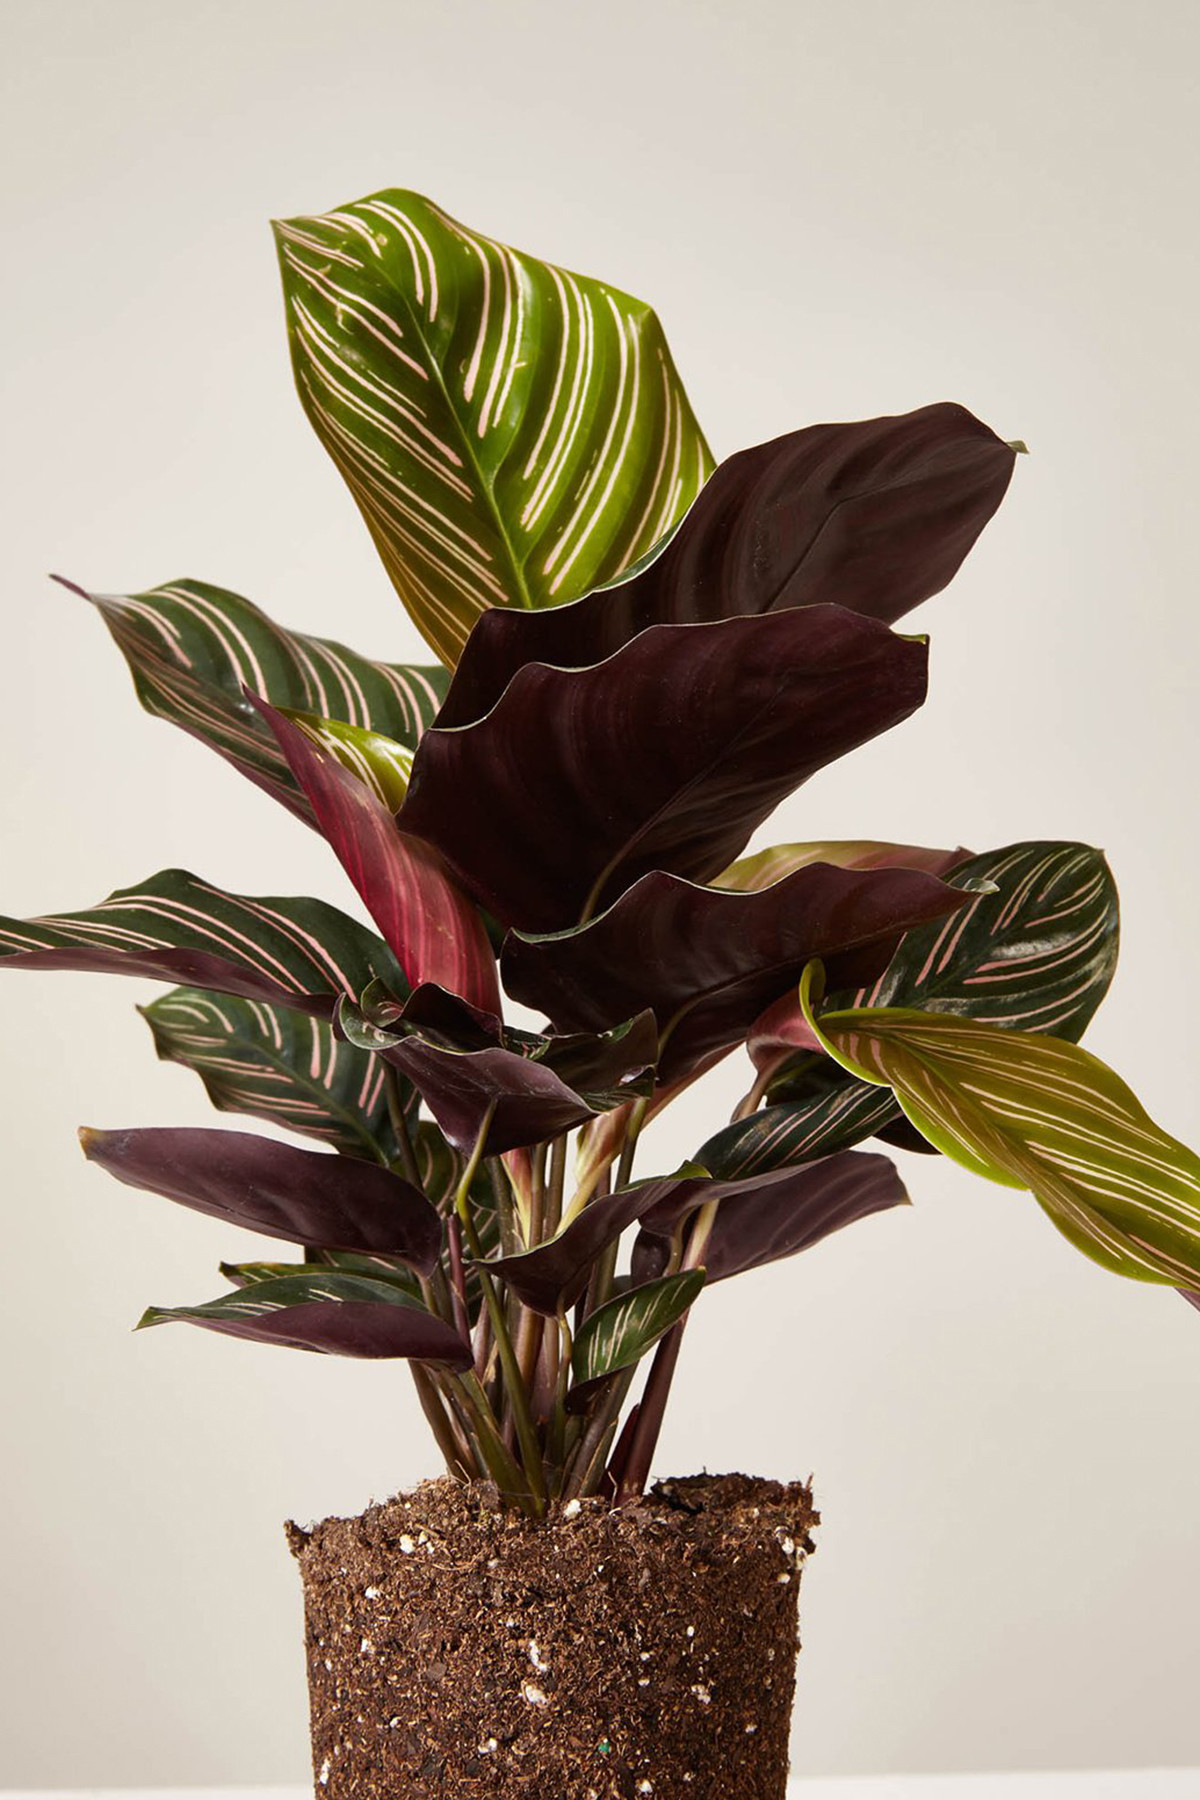 Trendy Houseplants Explained